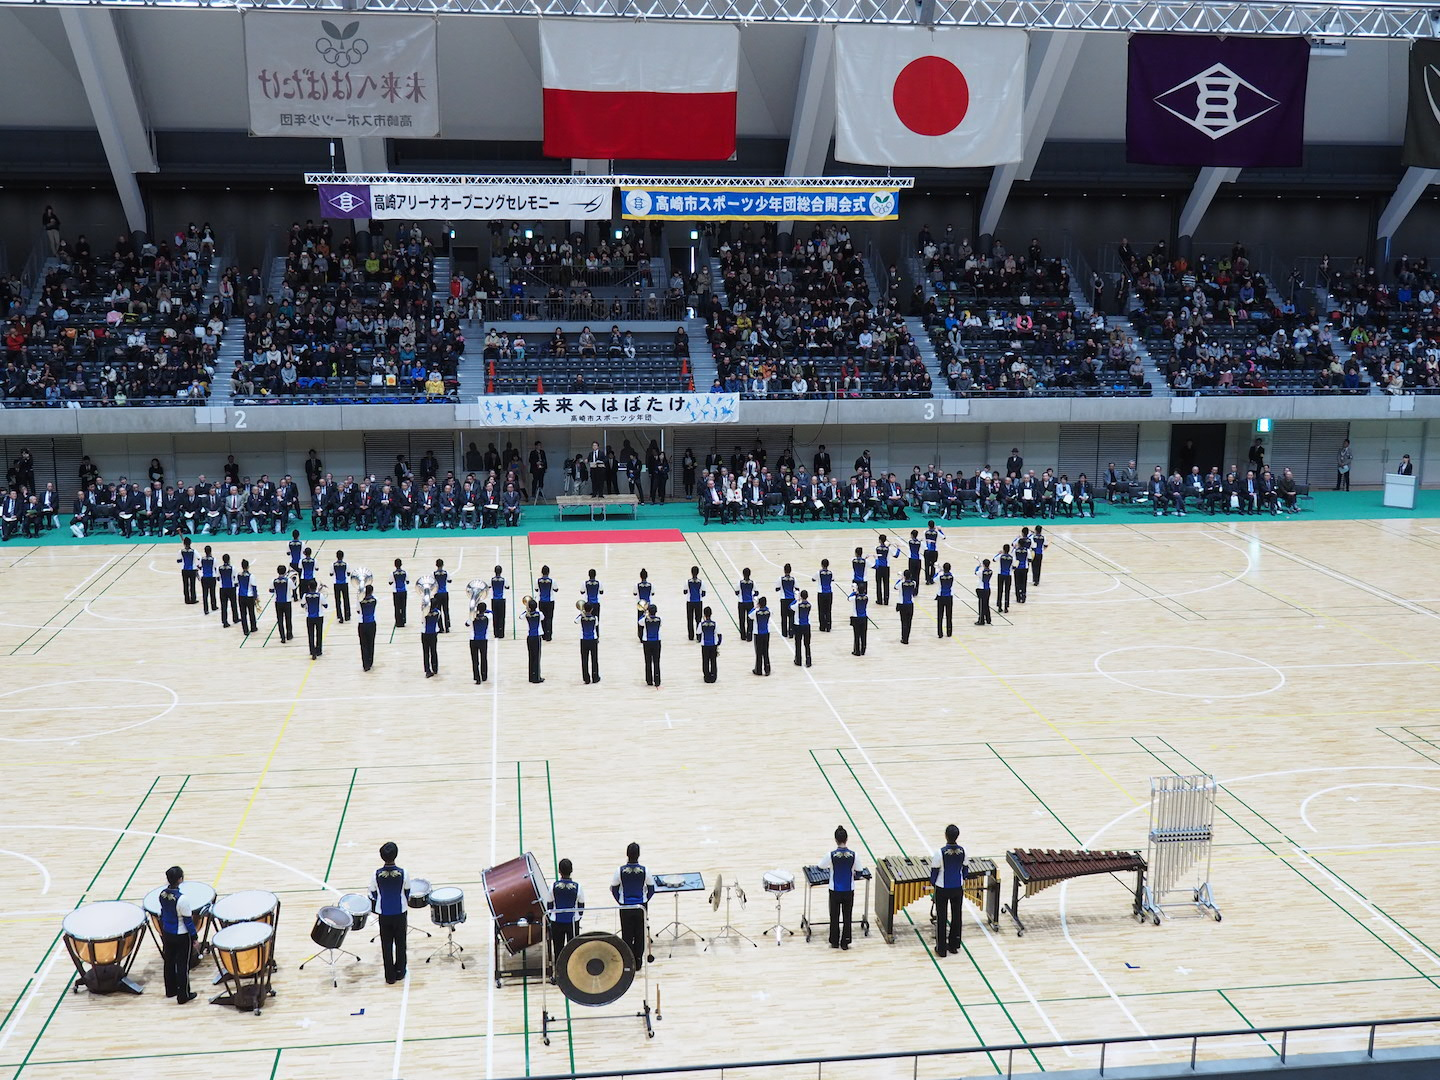 Takasaki Arena Opening Ceremony<br />Performed by<br />The Tsukasawa Junior High School Marching Band 4